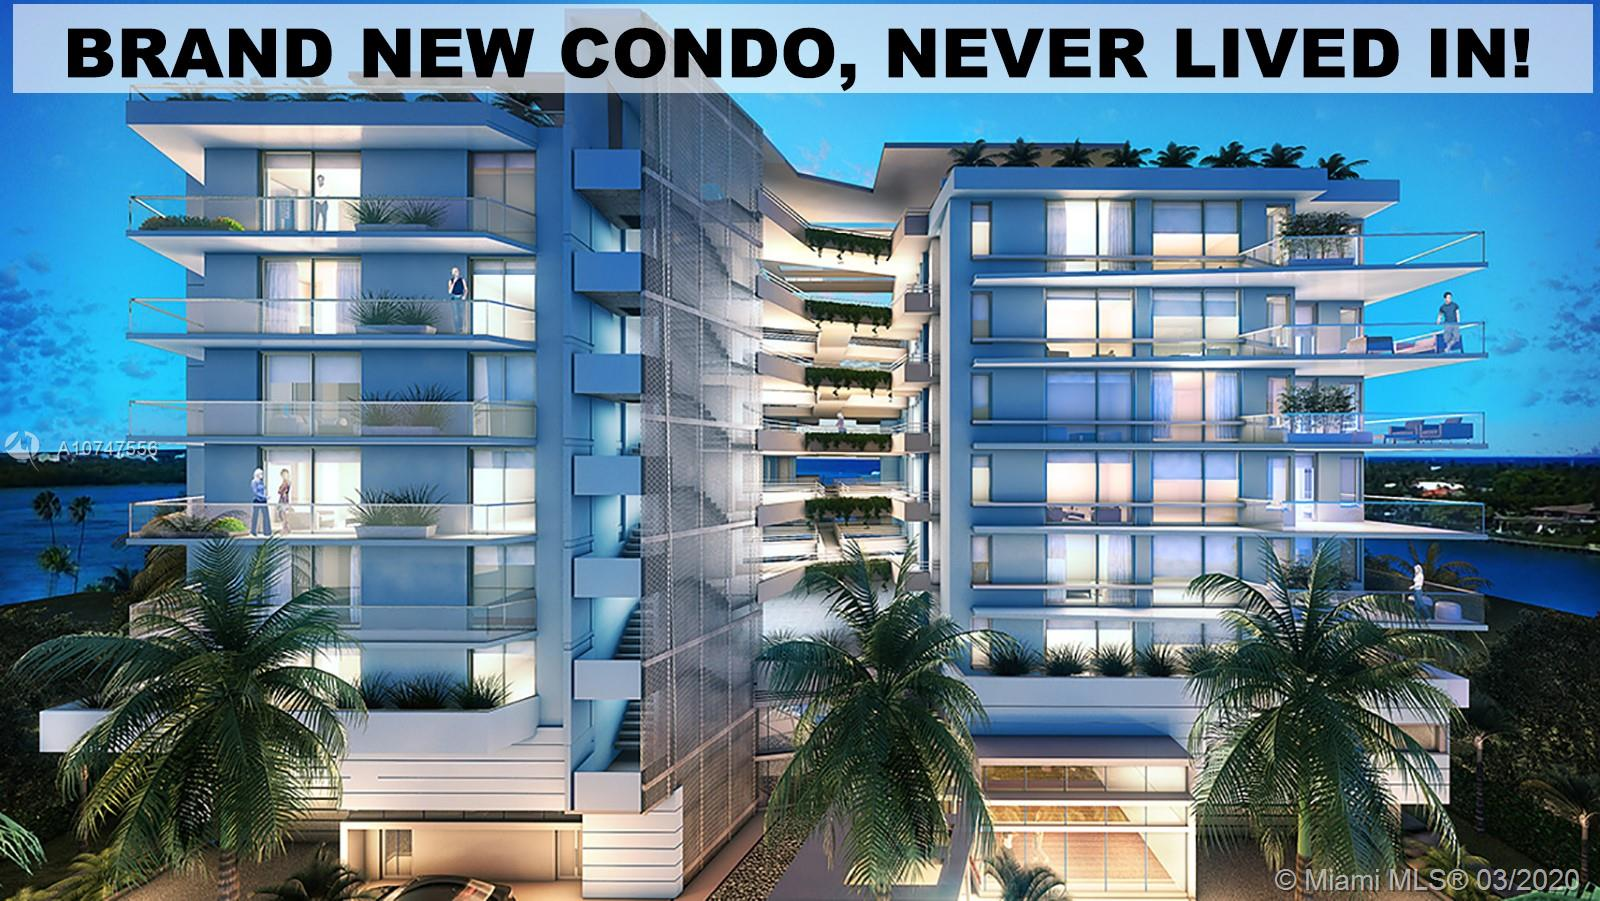 "BRAND NEW CONDO, NEVER LIVED IN!   Large 1 Bed + Den (can be 2nd bdr) & 2 Baths with partial water view. 2 covered parking spaces + 1 storage cage. Complete Kitchen with top of the line appliances including wine cooler and washer/dryer. The Palms Condo is a boutique waterfront building with a rooftop pool deck, hot tub, rooftop BBQ/entertainment area with amazing views. Located in Bay Harbor Islands, one of Miami's most desirable locations. Walk to ""A"" rated Ruth K. school (K-8), just minutes to the world-famous Bal Harbour Shops and the sandy beaches of Bal Harbour and Surfside.  The island is perfect for families; playgrounds throughout the island, tennis courts, bicycle paths, citibike rental adjacent to bldg. A one of a kind property in a one of a kind neighborhood."